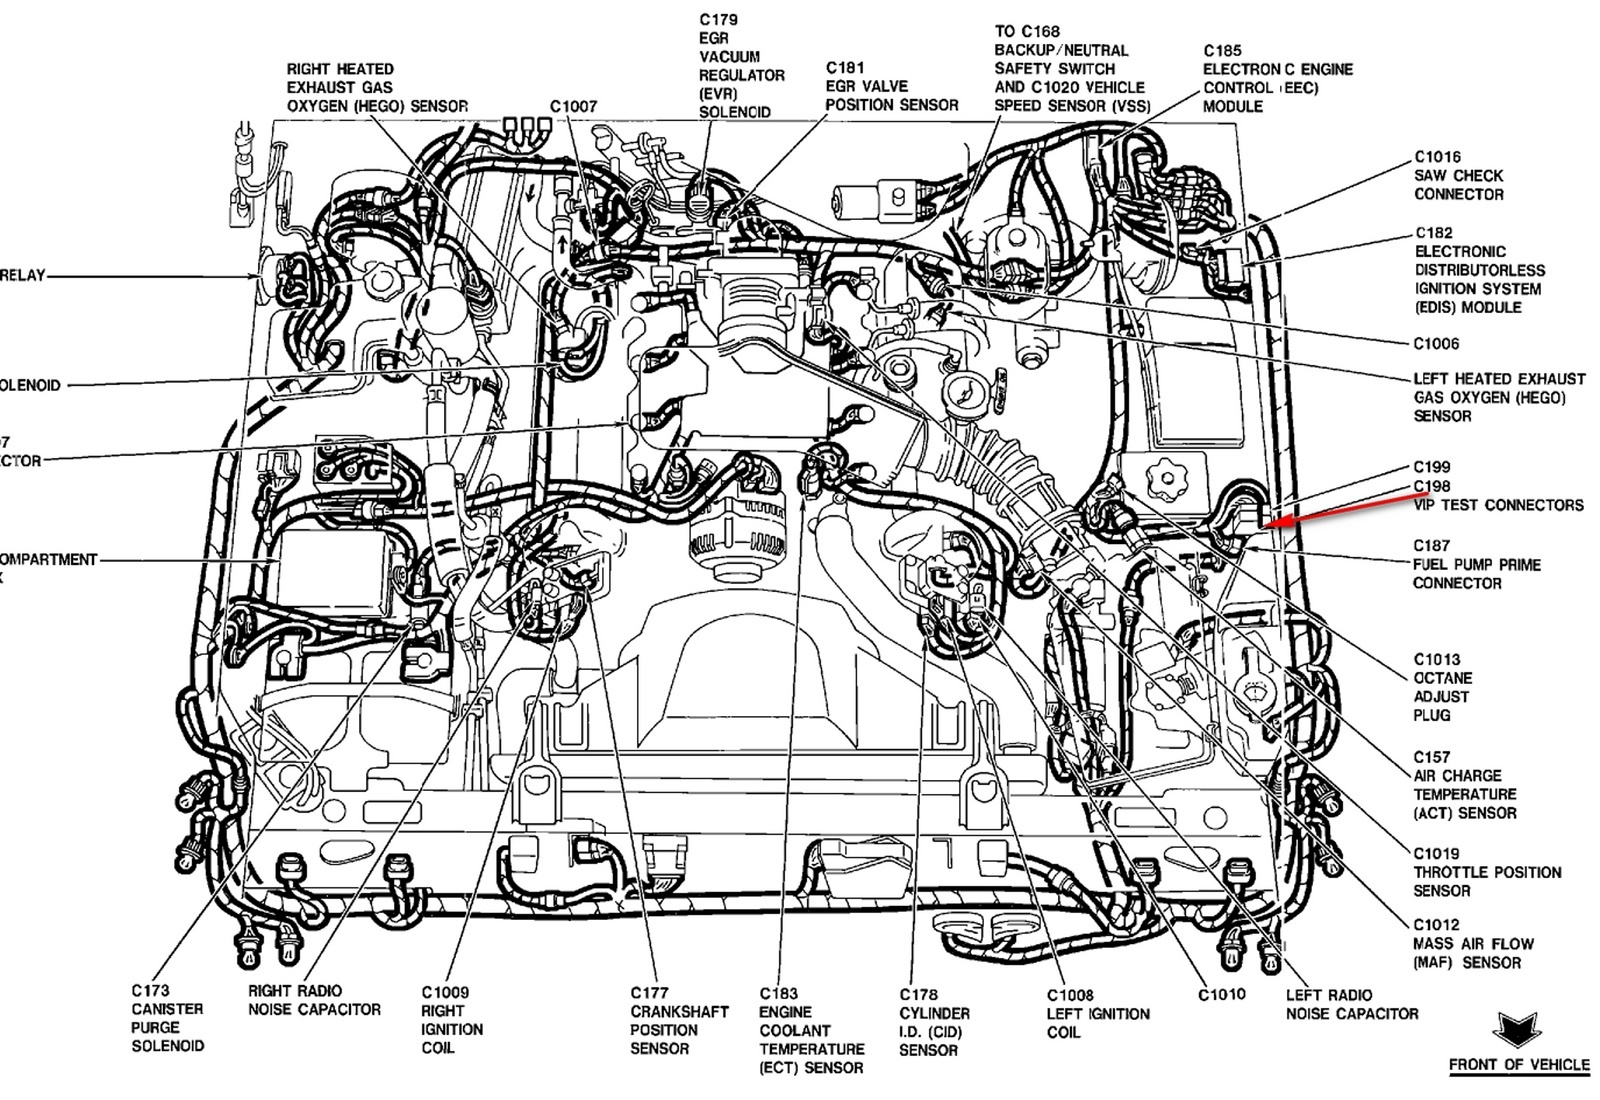 2007 Ford Focus Evap Schematics